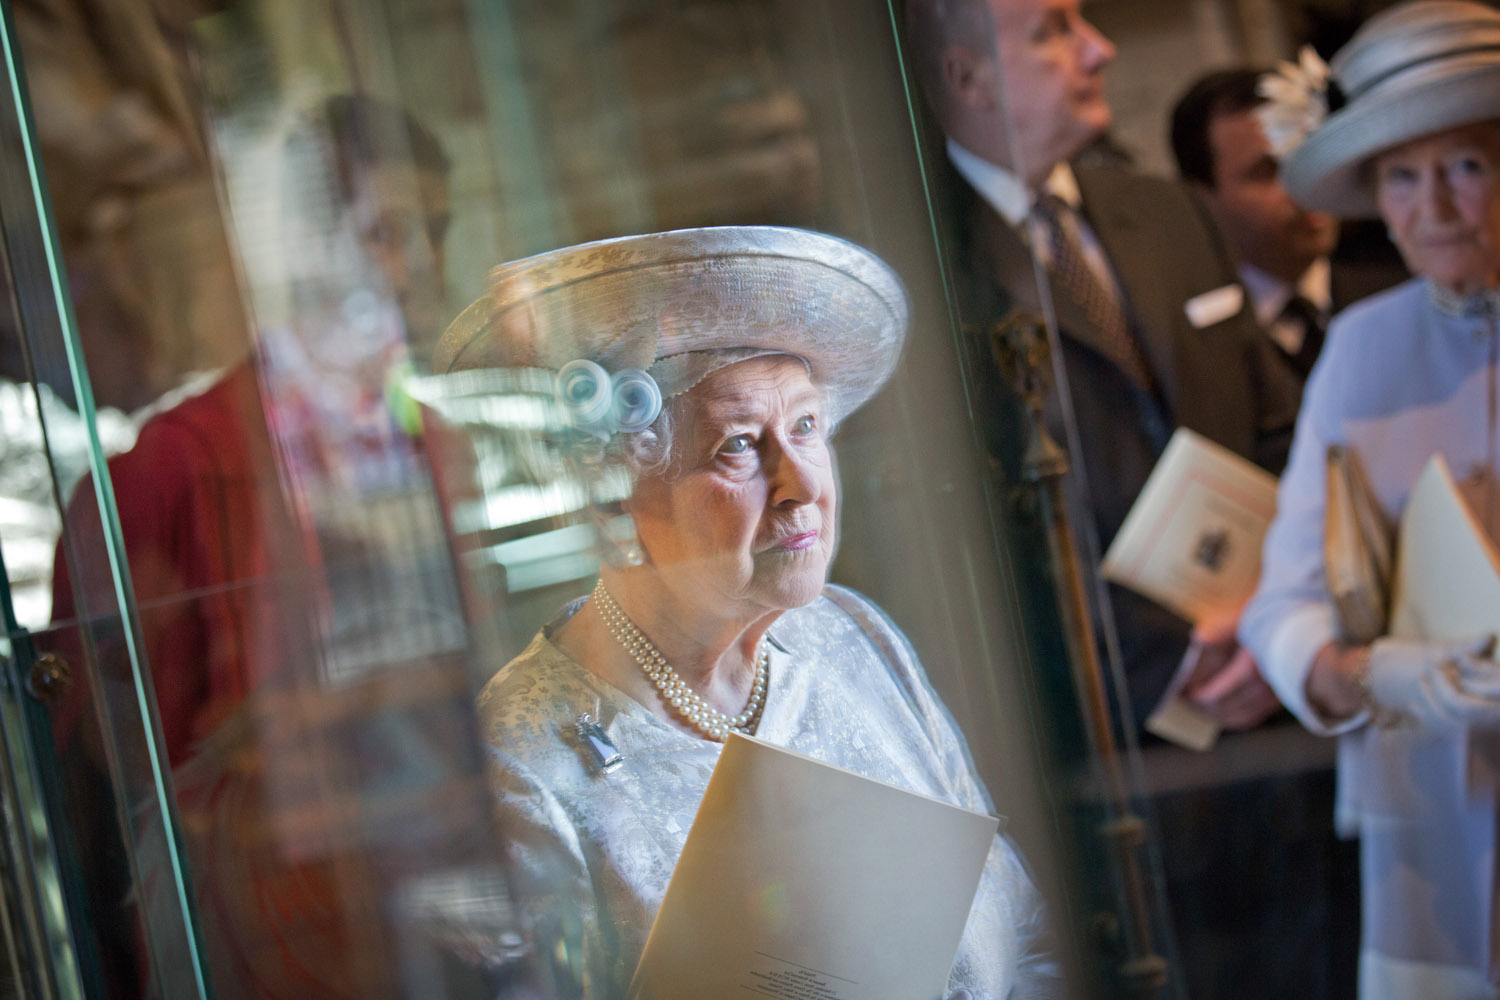 June 4, 2013. Queen Elizabeth II as she attends a service at Westminster Abbey in central London to mark the 60th anniversary of the Queen's coronation.